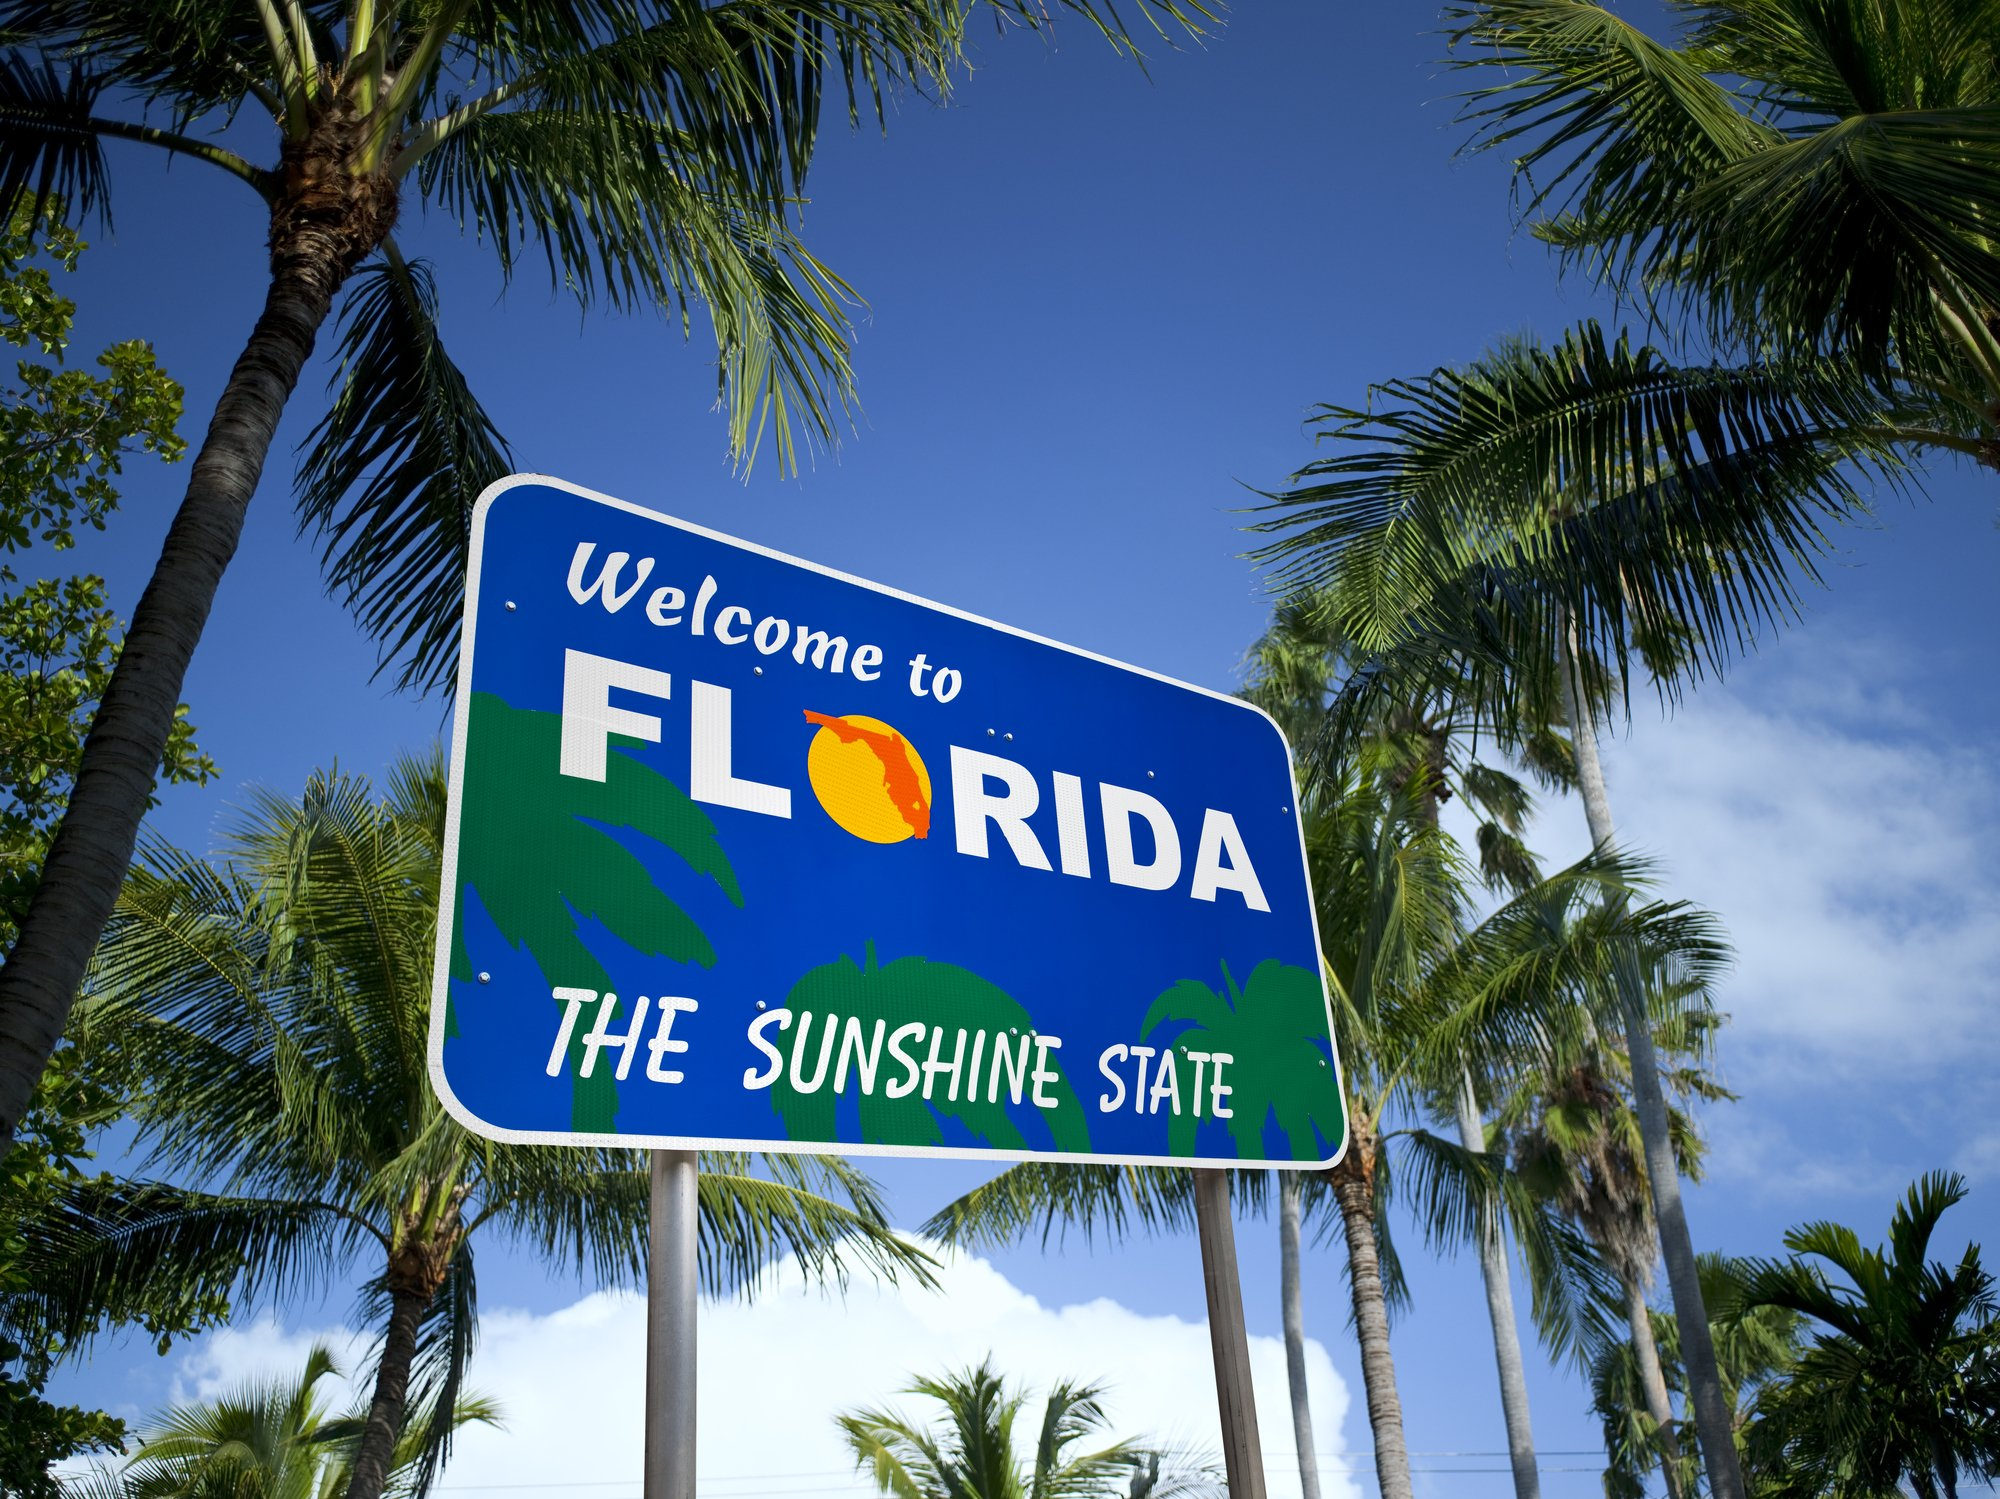 """Slide 10 of 51: The sign for Florida remarkably lacks Mickey Mouse, but the palm trees and orange do beautifully capture the essence of the state. Speaking of Mickey, here's what the """"new normal"""" of Disney parks look like."""